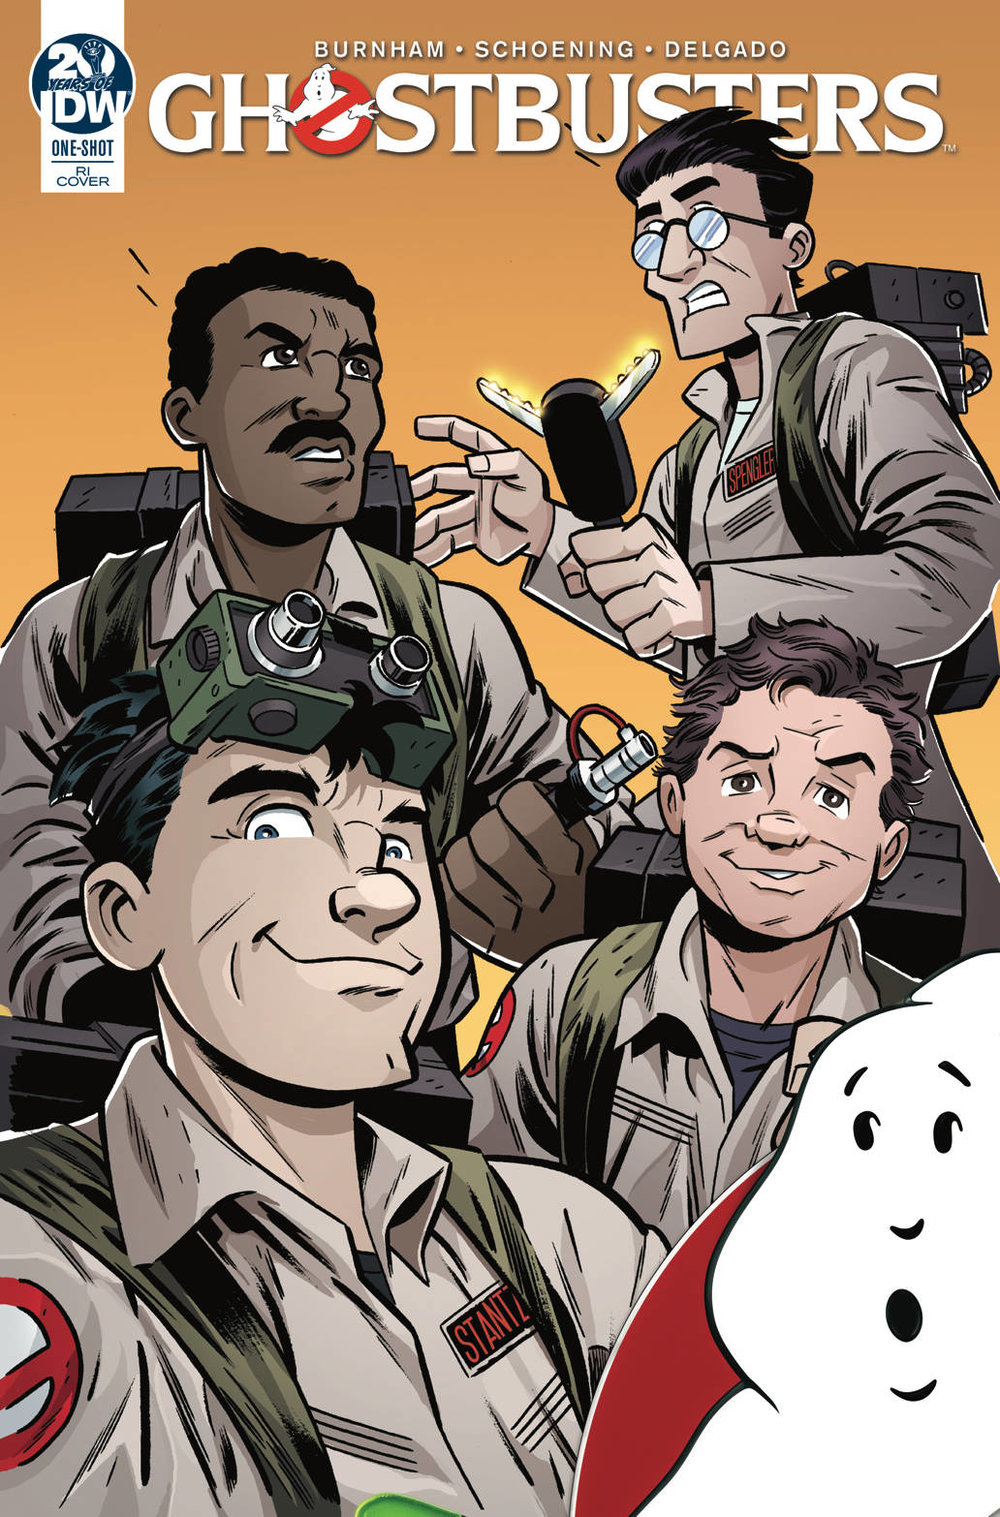 GHOSTBUSTERS 35TH ANNIV GHOSTBUSTERS 1 10 COPY INCV MARQUES.jpg